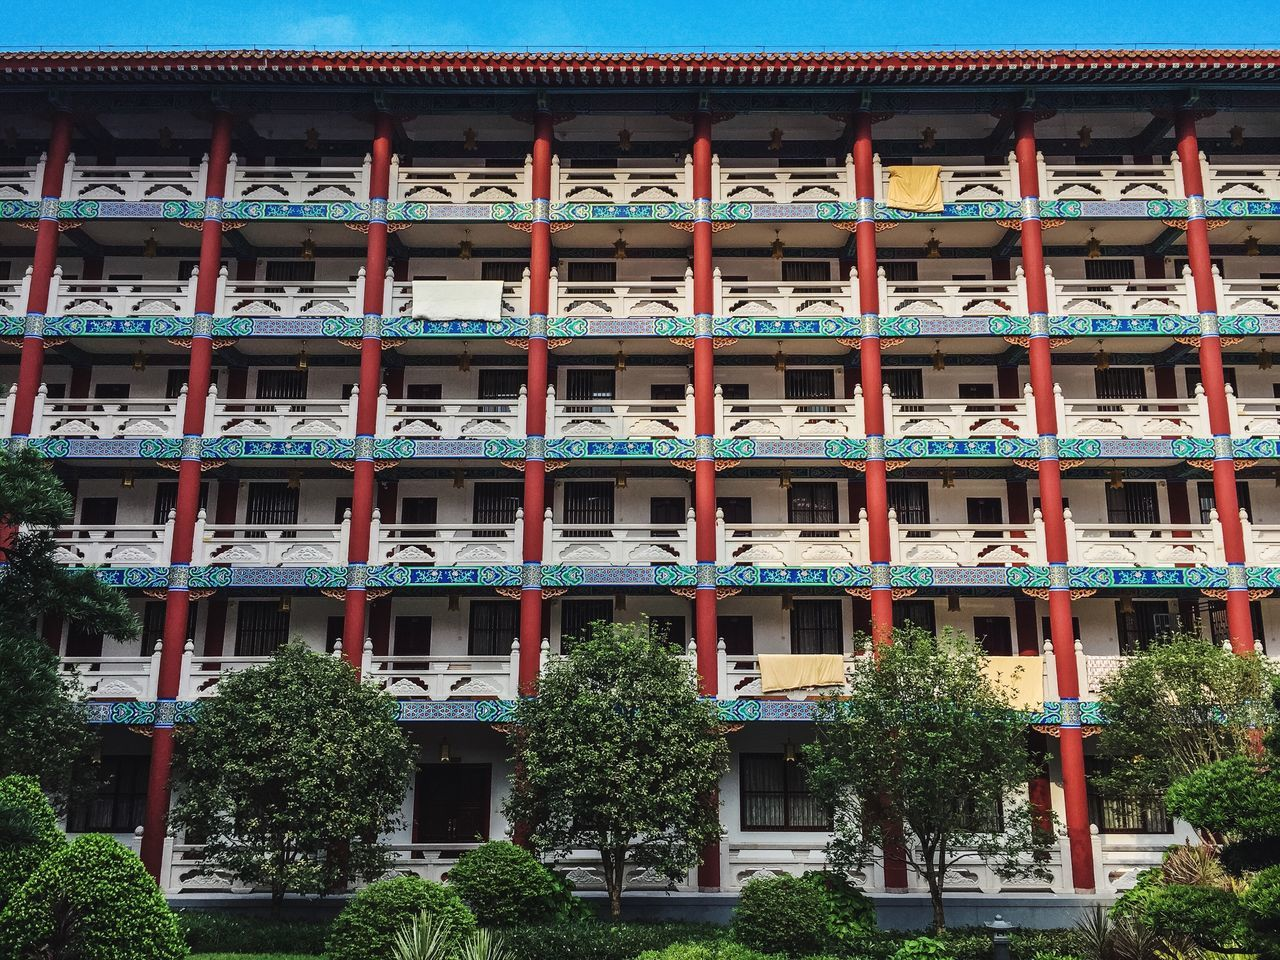 Architecture Built Structure Building Exterior Window Residential Building Residential Structure House Balcony Low Angle View Façade In A Row Outdoors Day Repetition Growth Beautifully Organized Apartment No People Exterior Temple Chinese Chinese Culture Monk  Zhuhai China